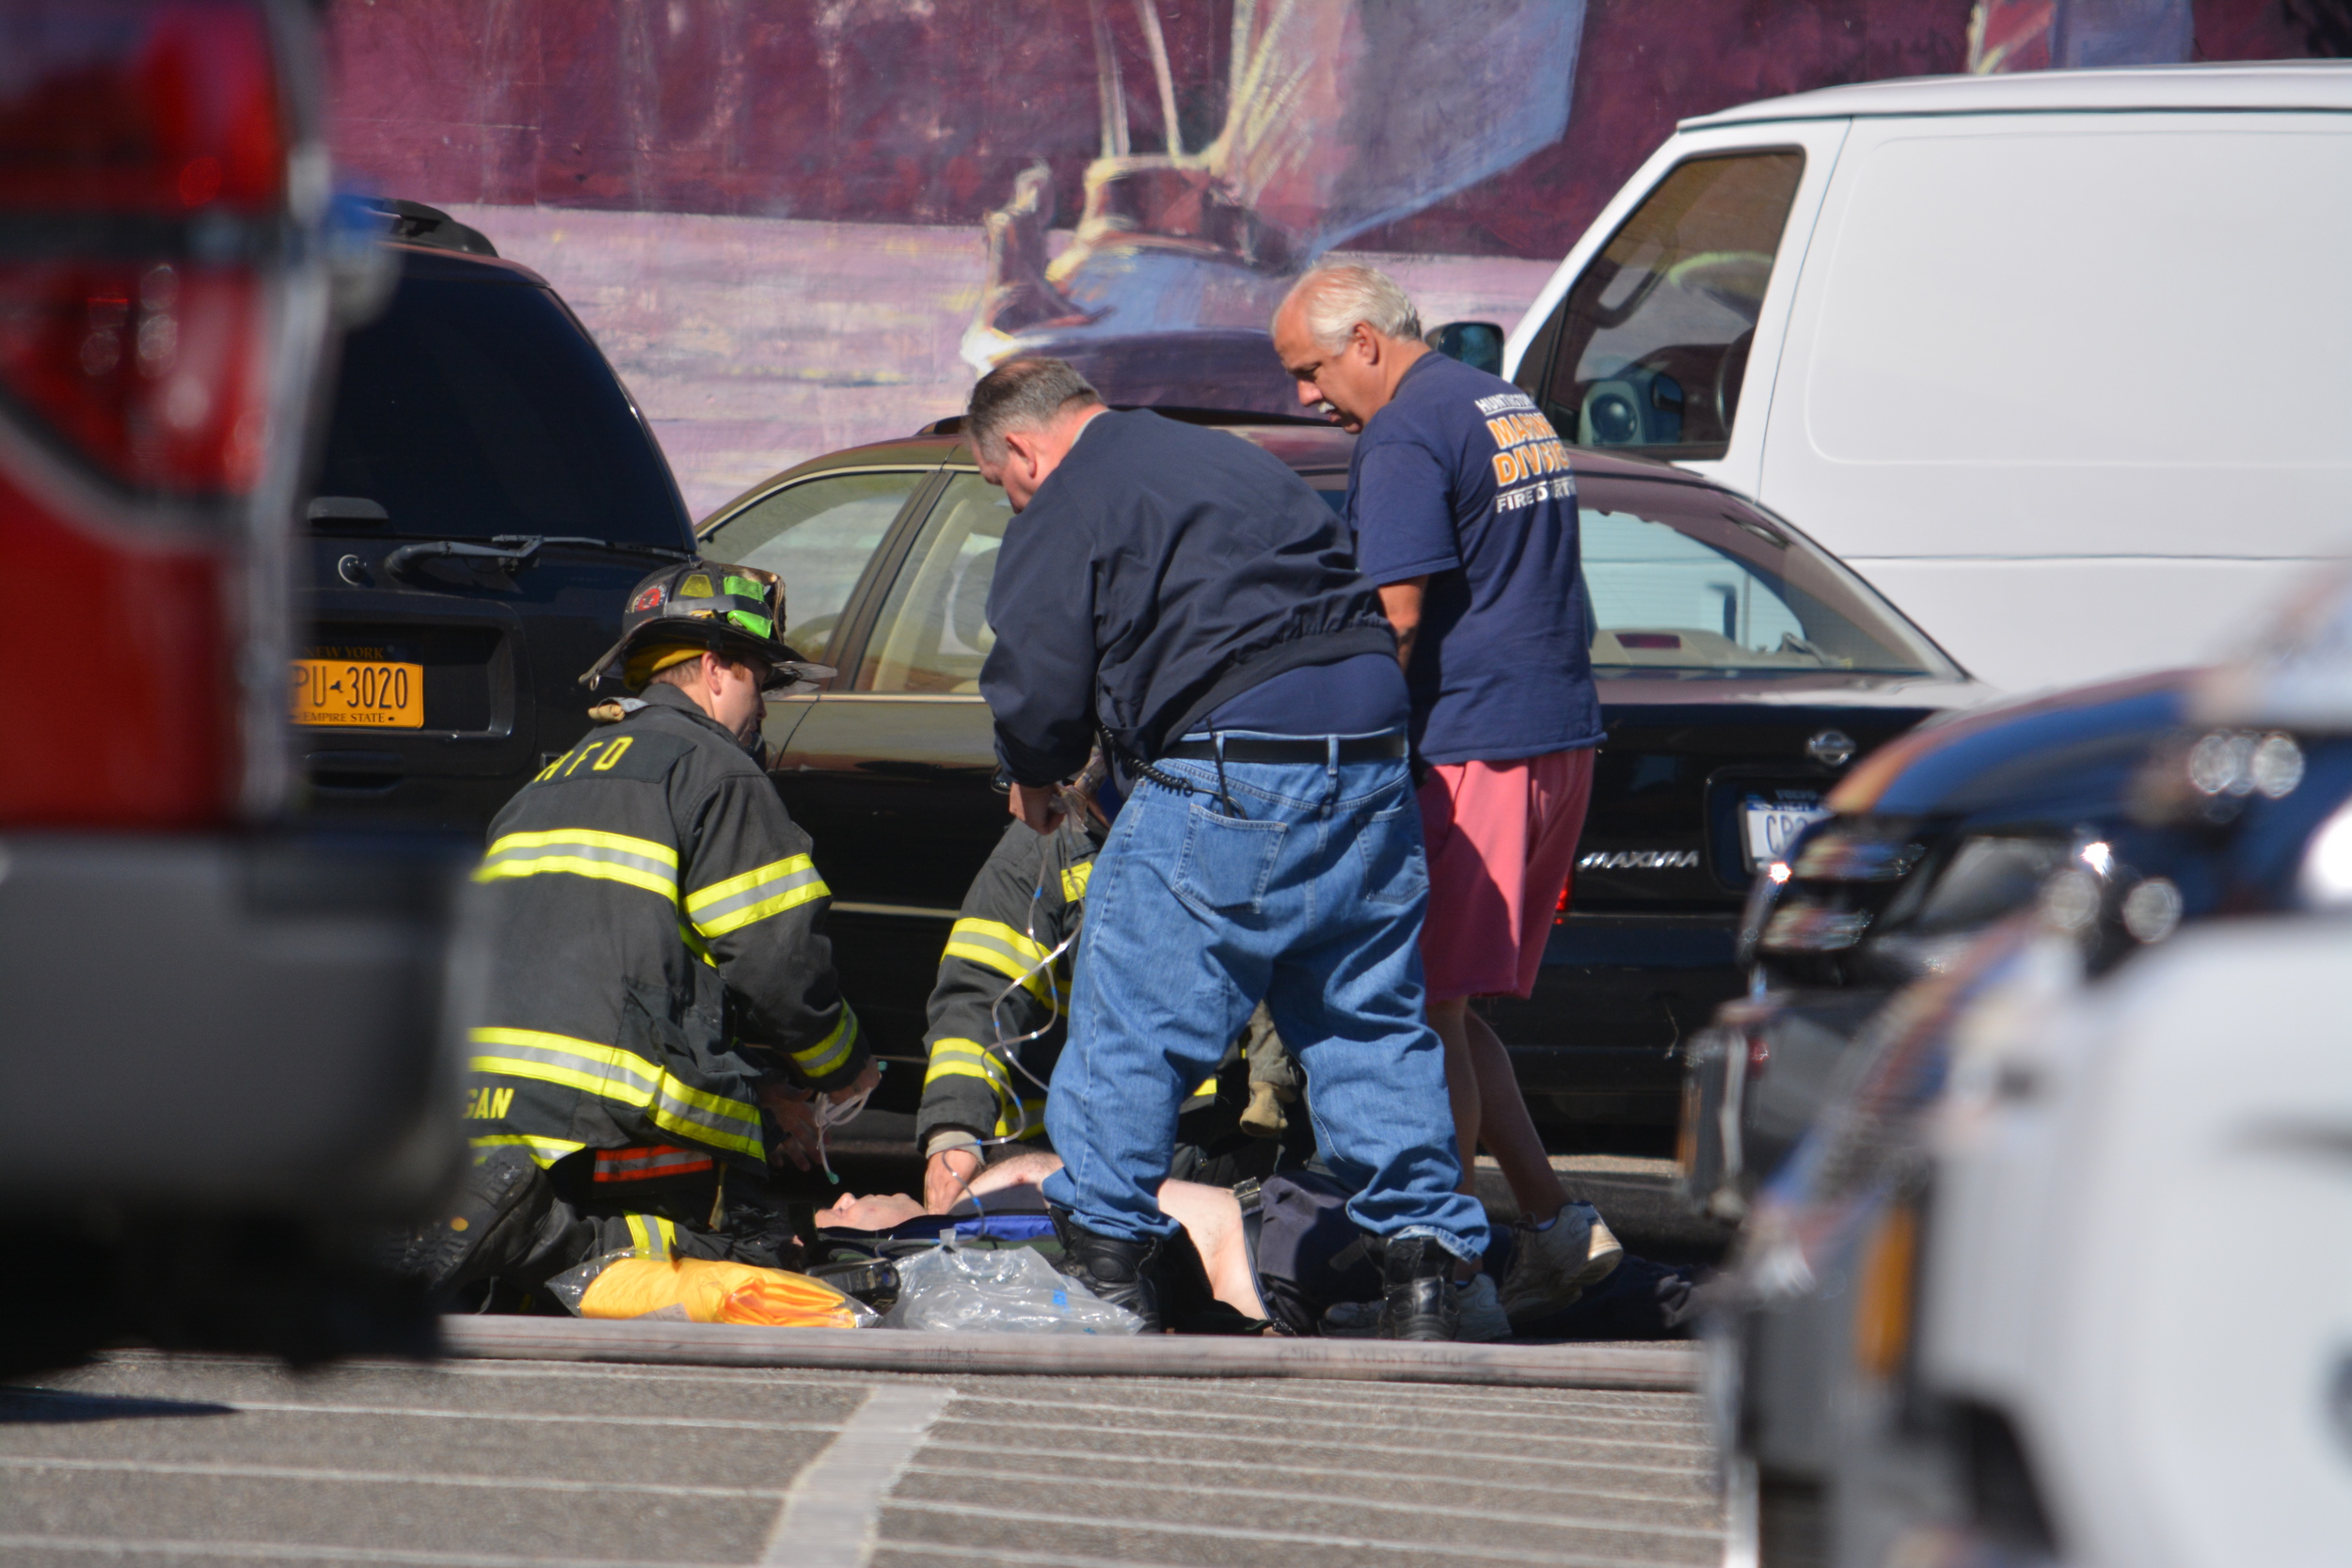 First responders treat Ralph Colamussi in a Huntington parking lot after an apparent suicide attempt, police sources confirmed. (Long Islander News photo/Arielle Dollinger)